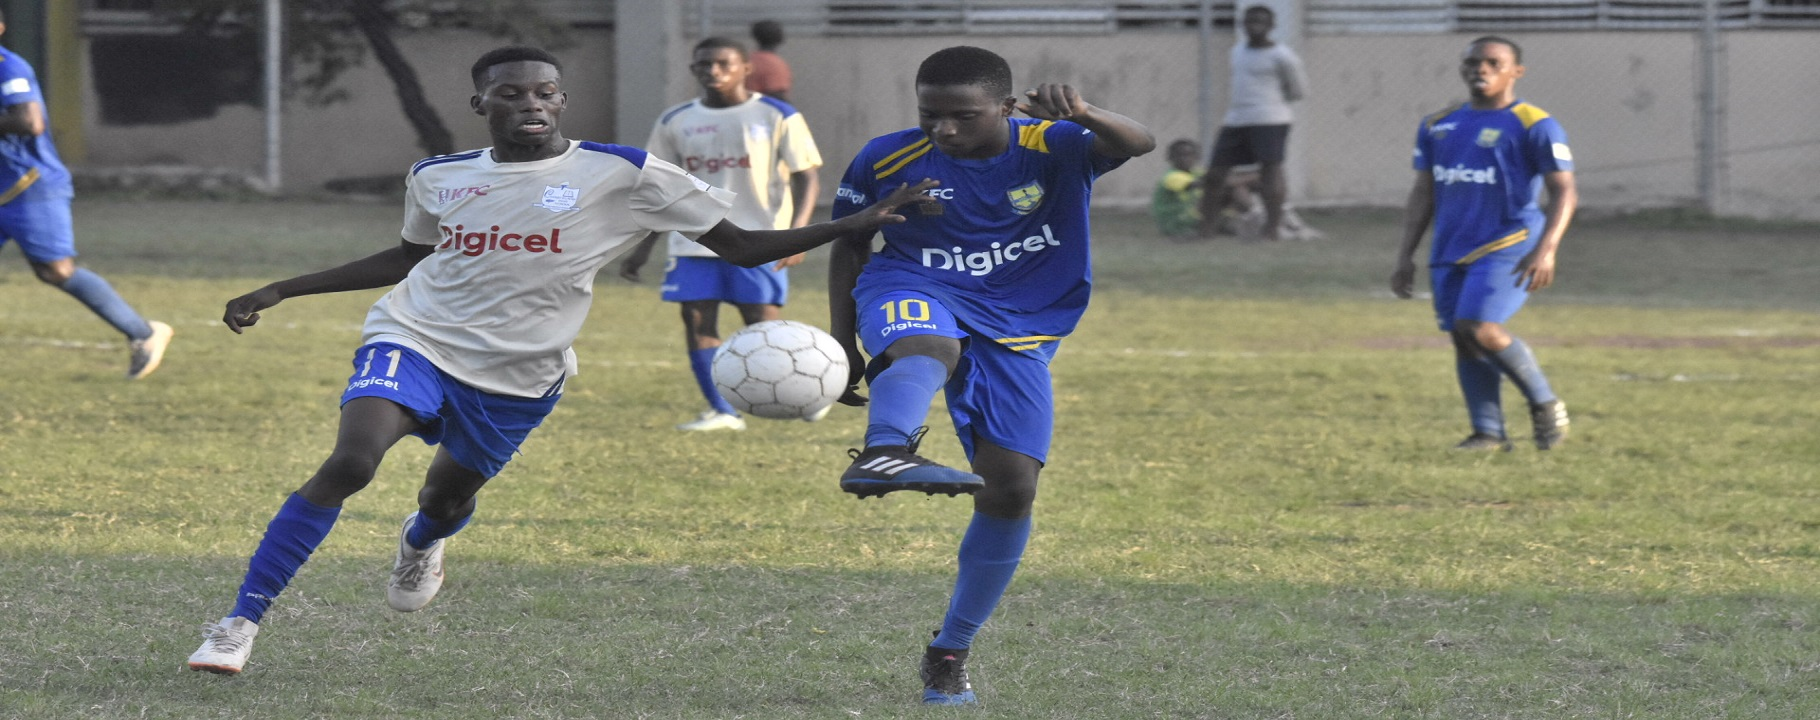 Bobby McLean (left) of Cumberland High and Papine High's goalscorer Rushike Nelson fight for possession during their Group A return leg fixture at Papine High on Saturday, October 13, 2018. Cumberland won 2-1. (PHOTOS: Marlon Reid).